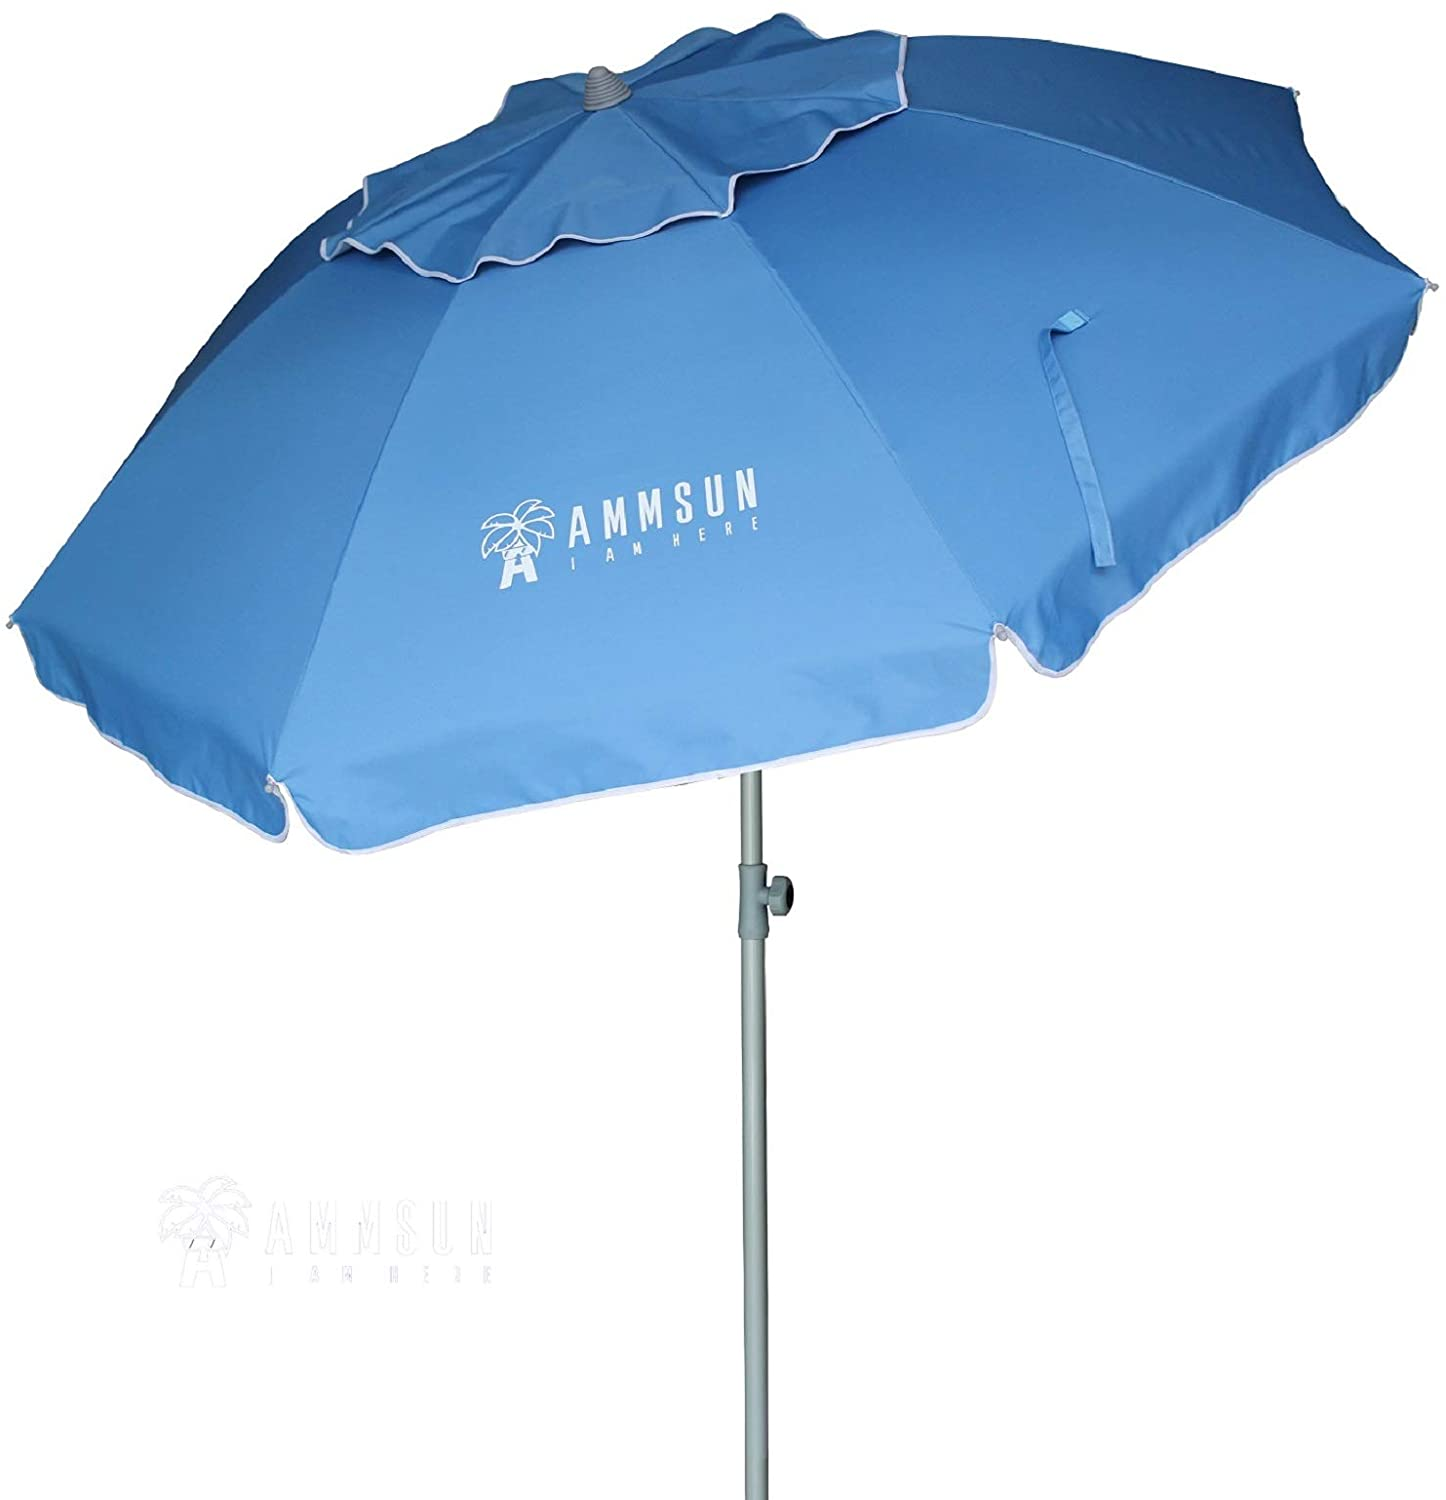 AMMSUN 6.5ft Patio Outdoor Umbrella with Push Button Tilt and Removable Fork Anchor, UPF 50+, Ideal Umbrella for Garden, Backyard and Outdoor Activities, Portable Easy Carry Bag Included (Sky Blue)